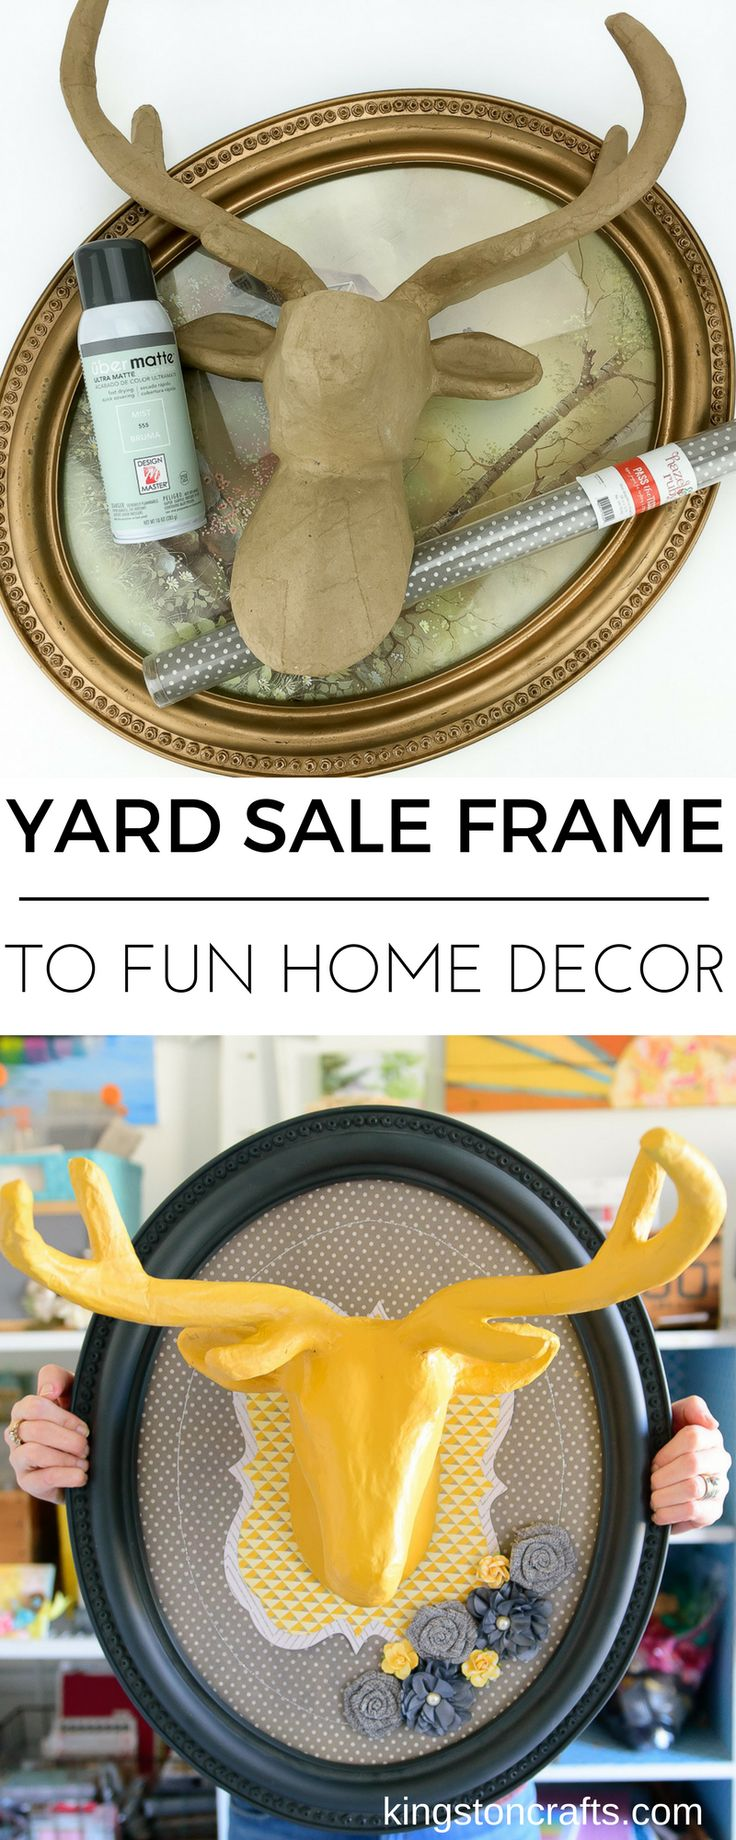 Yard Sale Frame to Fun Home Decor - Tale of the Left Out Wall Hanging — Kingston Crafts